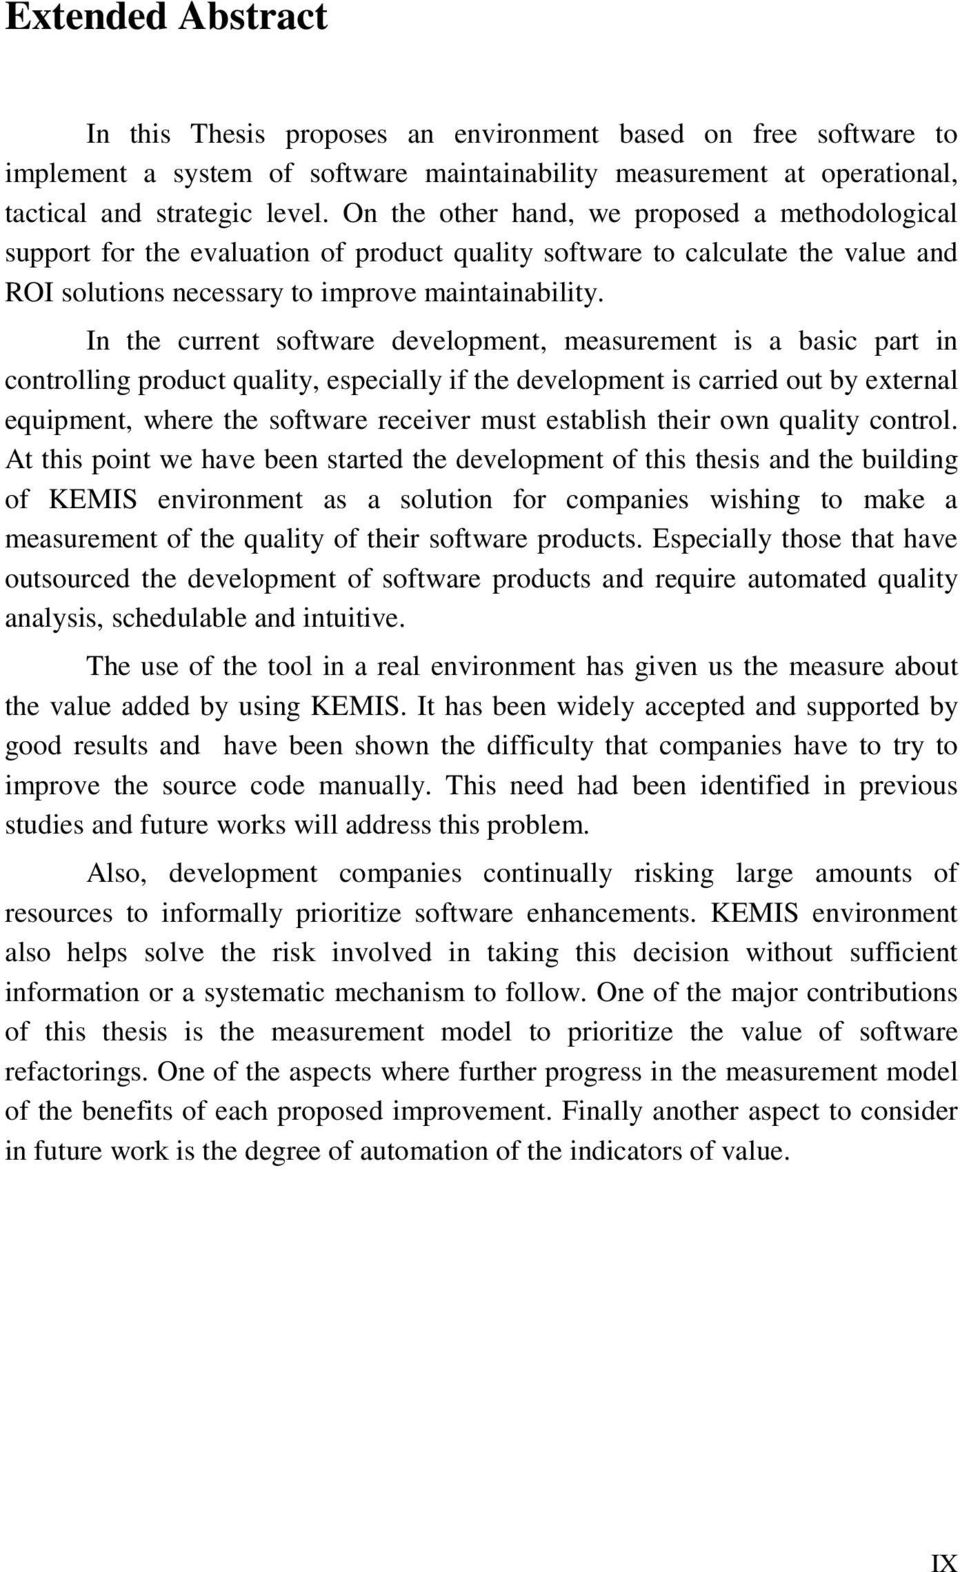 In the current software development, measurement is a basic part in controlling product quality, especially if the development is carried out by external equipment, where the software receiver must